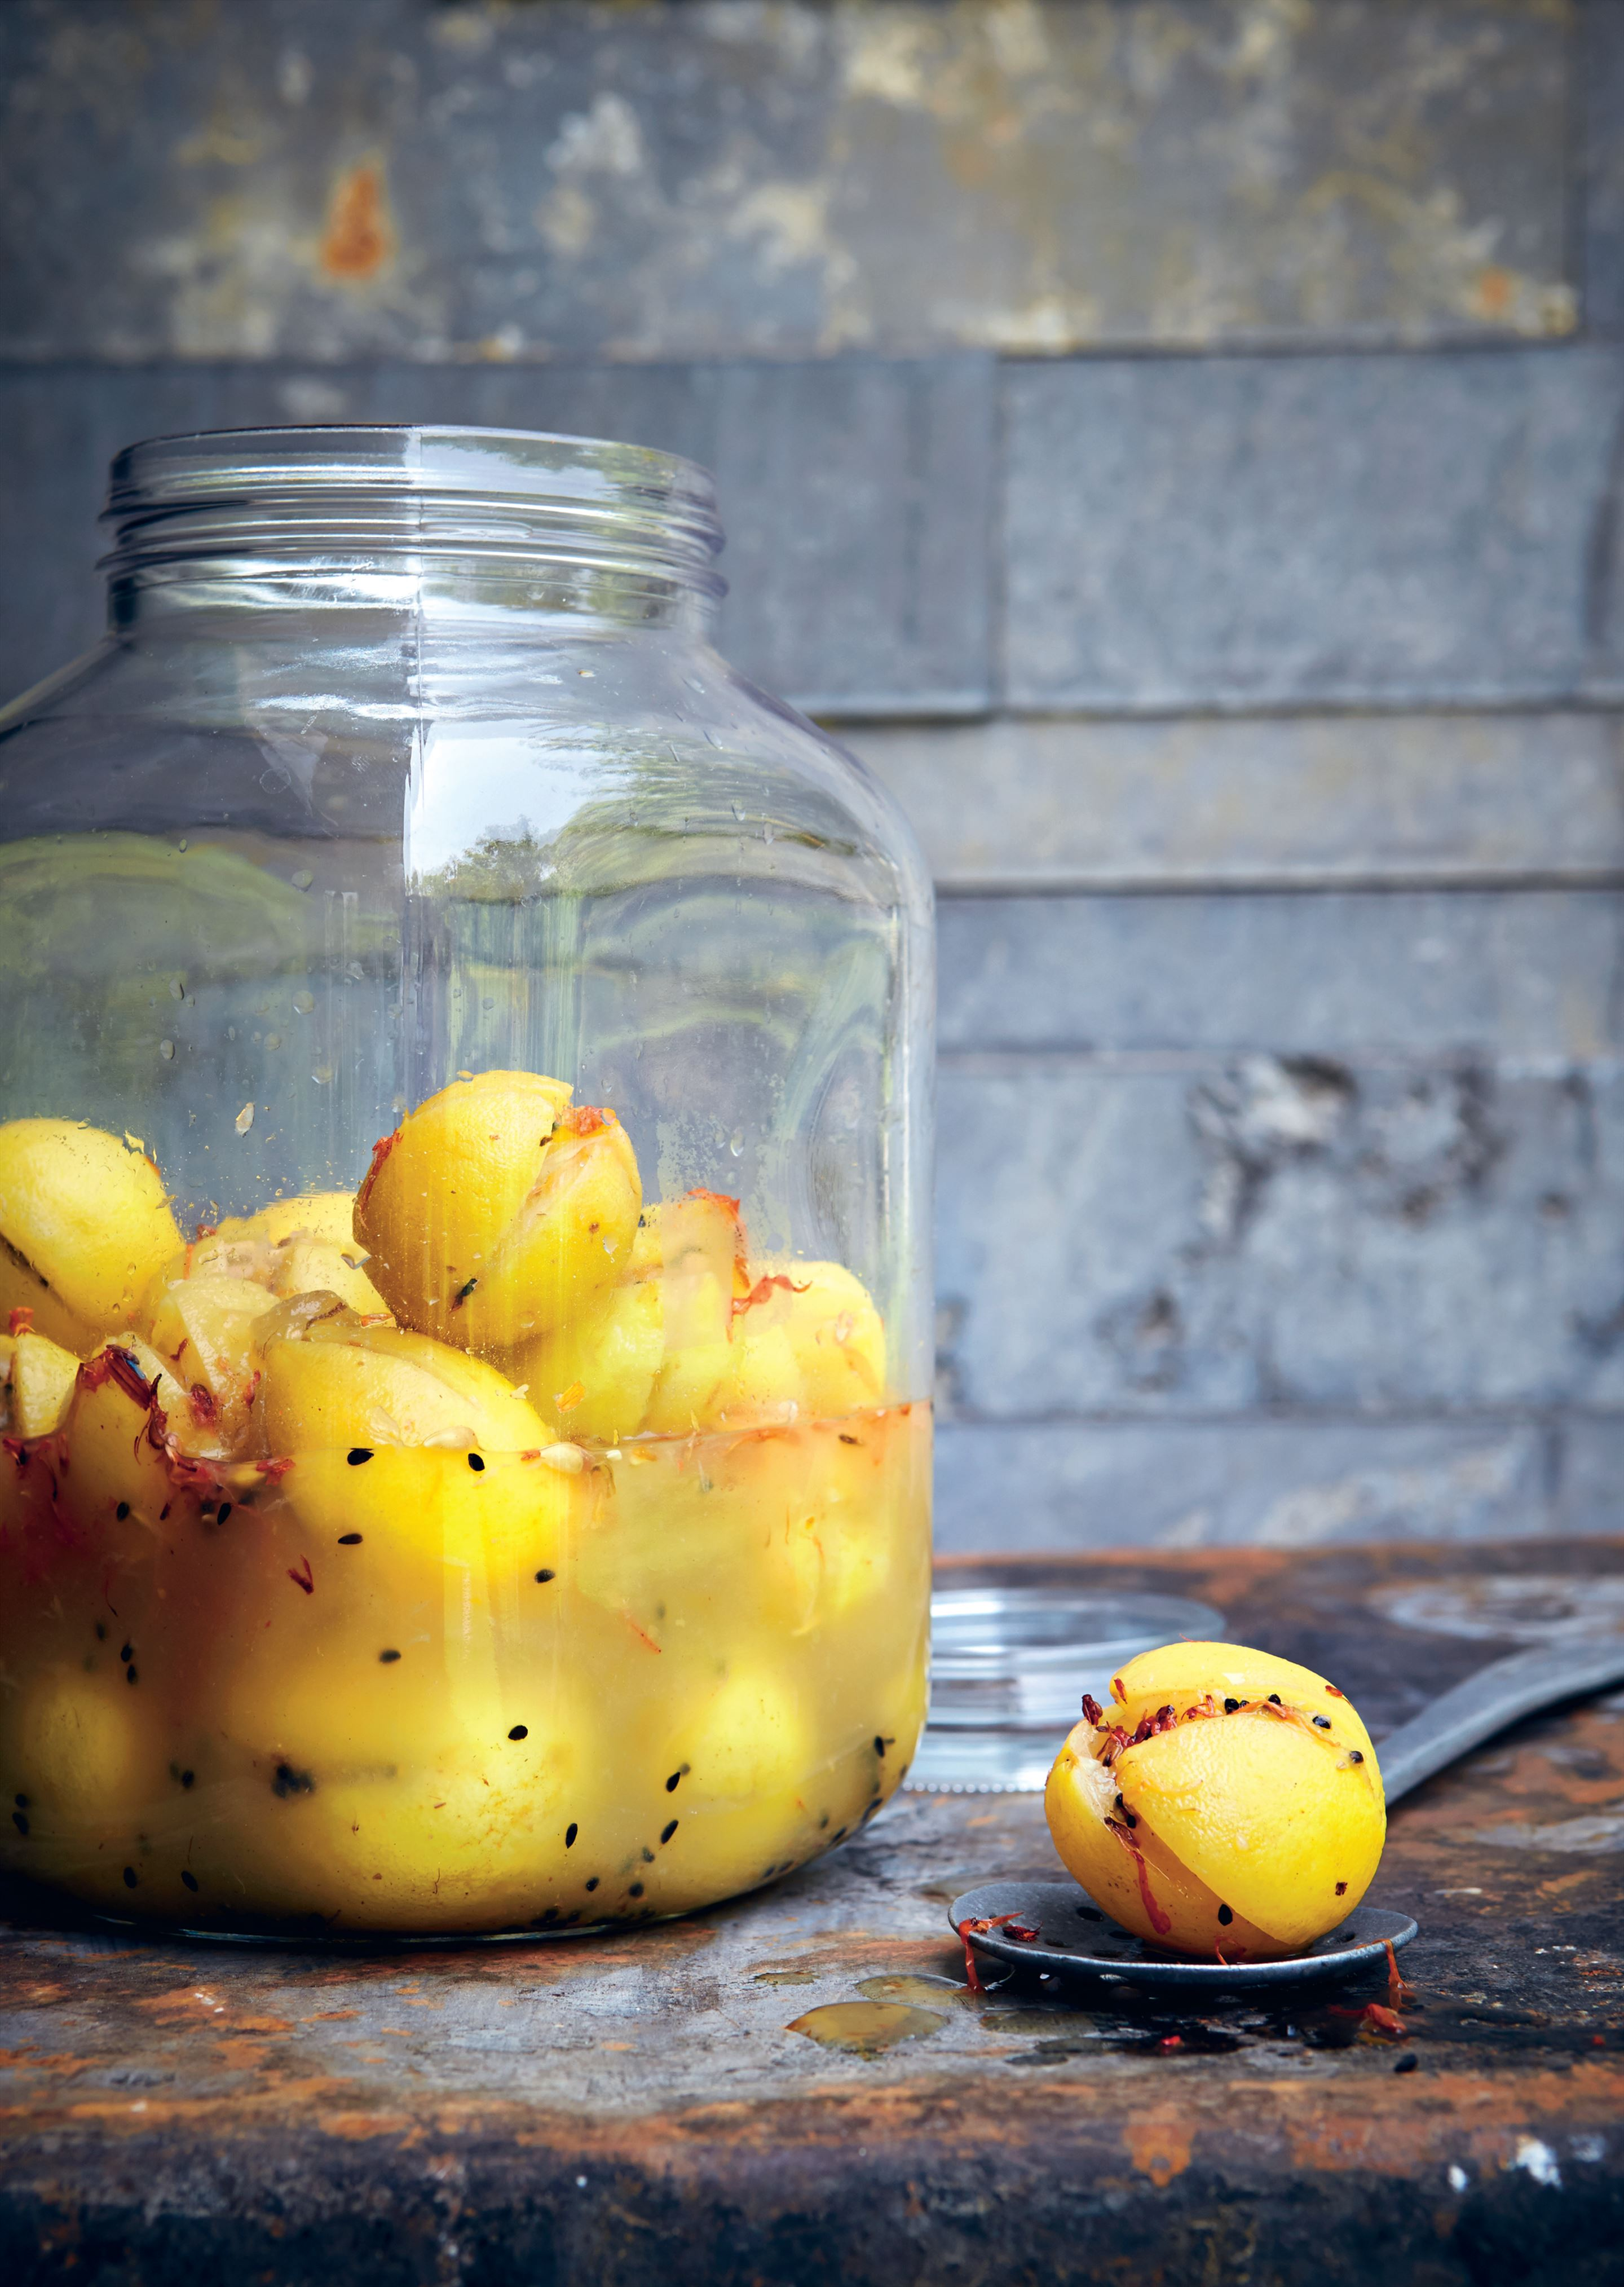 Pickled lemons with safflower